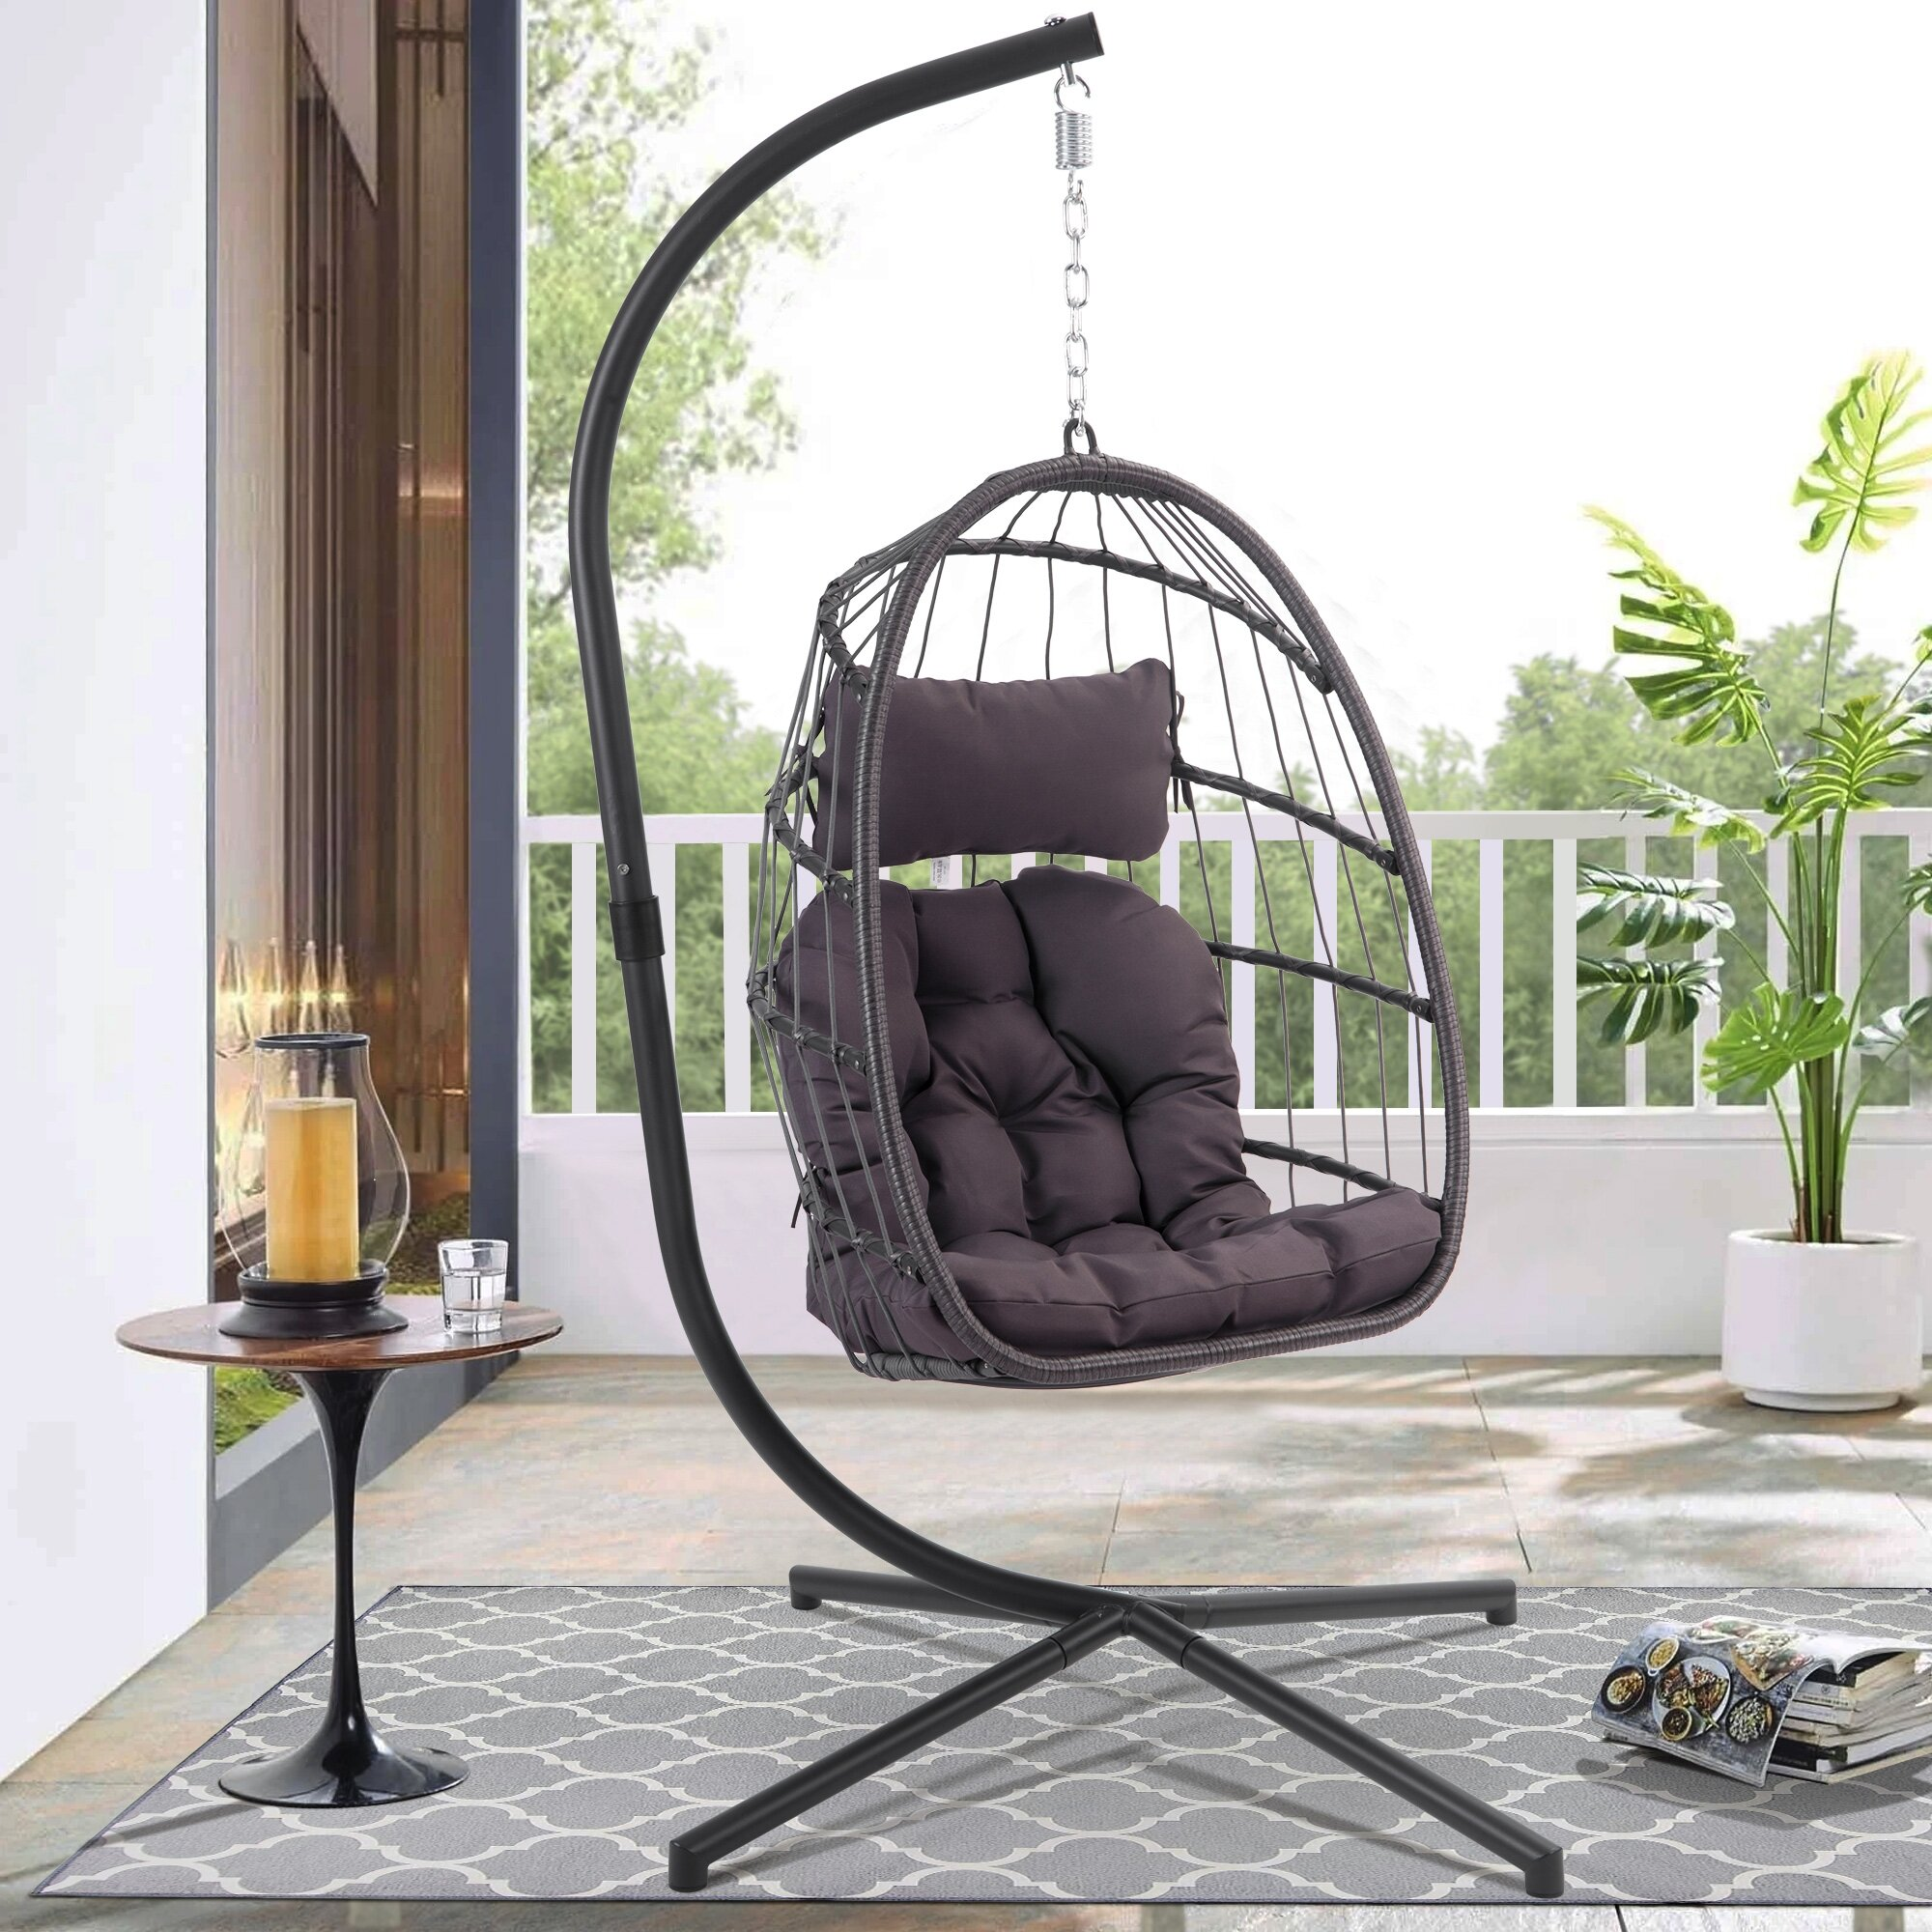 Black Indoor And Outdoor Use Collapsible Hanging Hammock Chair Stand Portable Dawsons Living Hanging Egg Chair Stand Garden Furniture Accessories Hammocks Swing Chairs Accessories